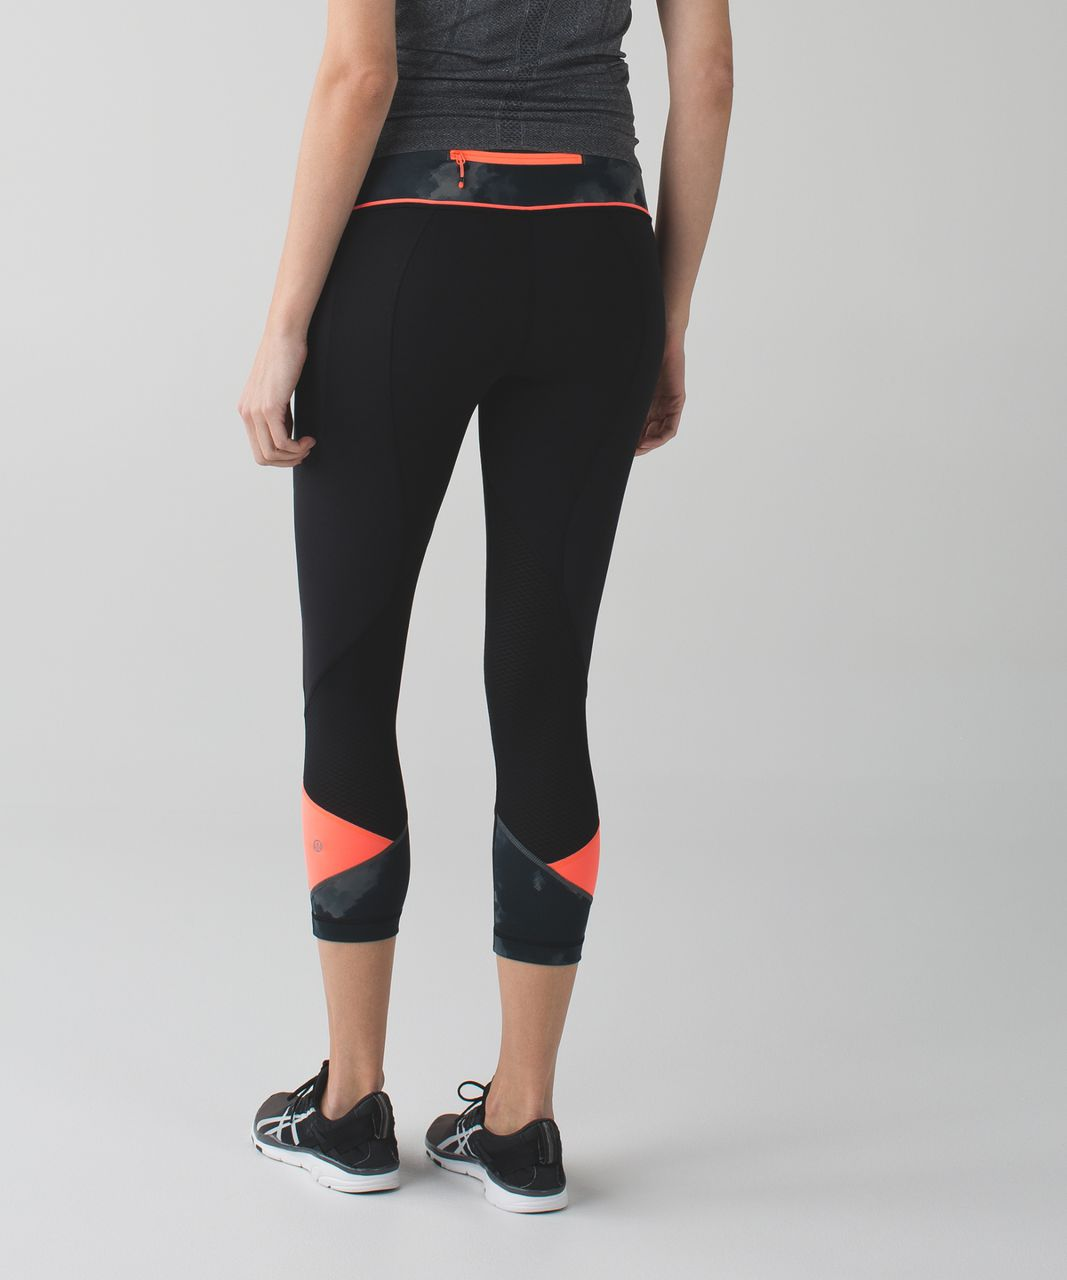 "Lululemon Pace Rival Crop *22"" - Black / Blooming Pixie Slate Black / Very Light Flare"